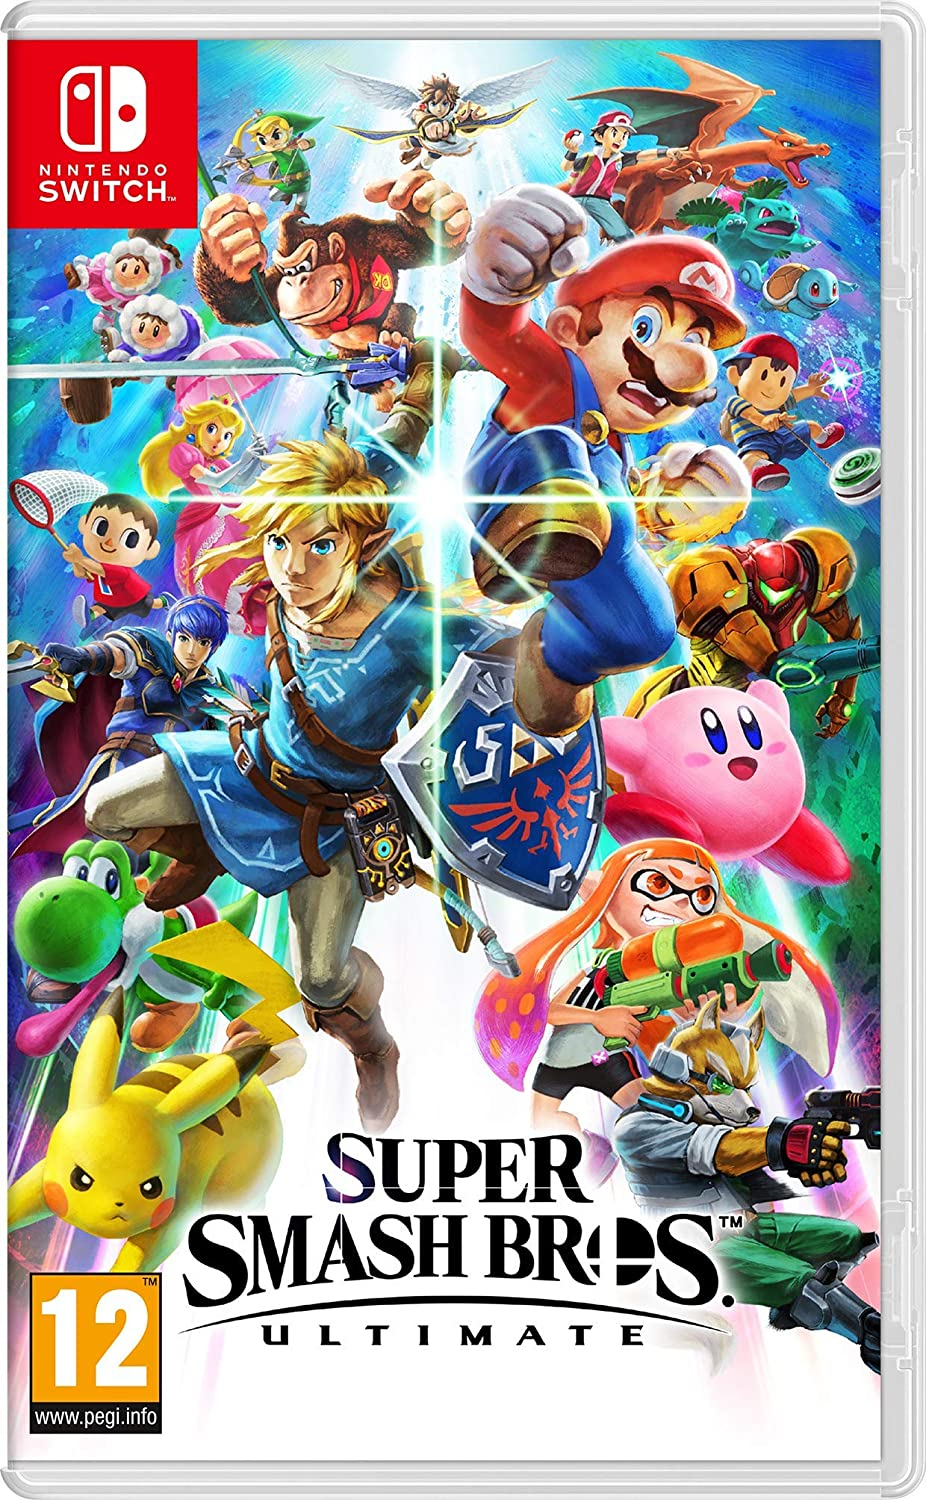 Super Smash Bros Ultimate - Nintendo Switch [Importación italiana]: Amazon.es: Videojuegos